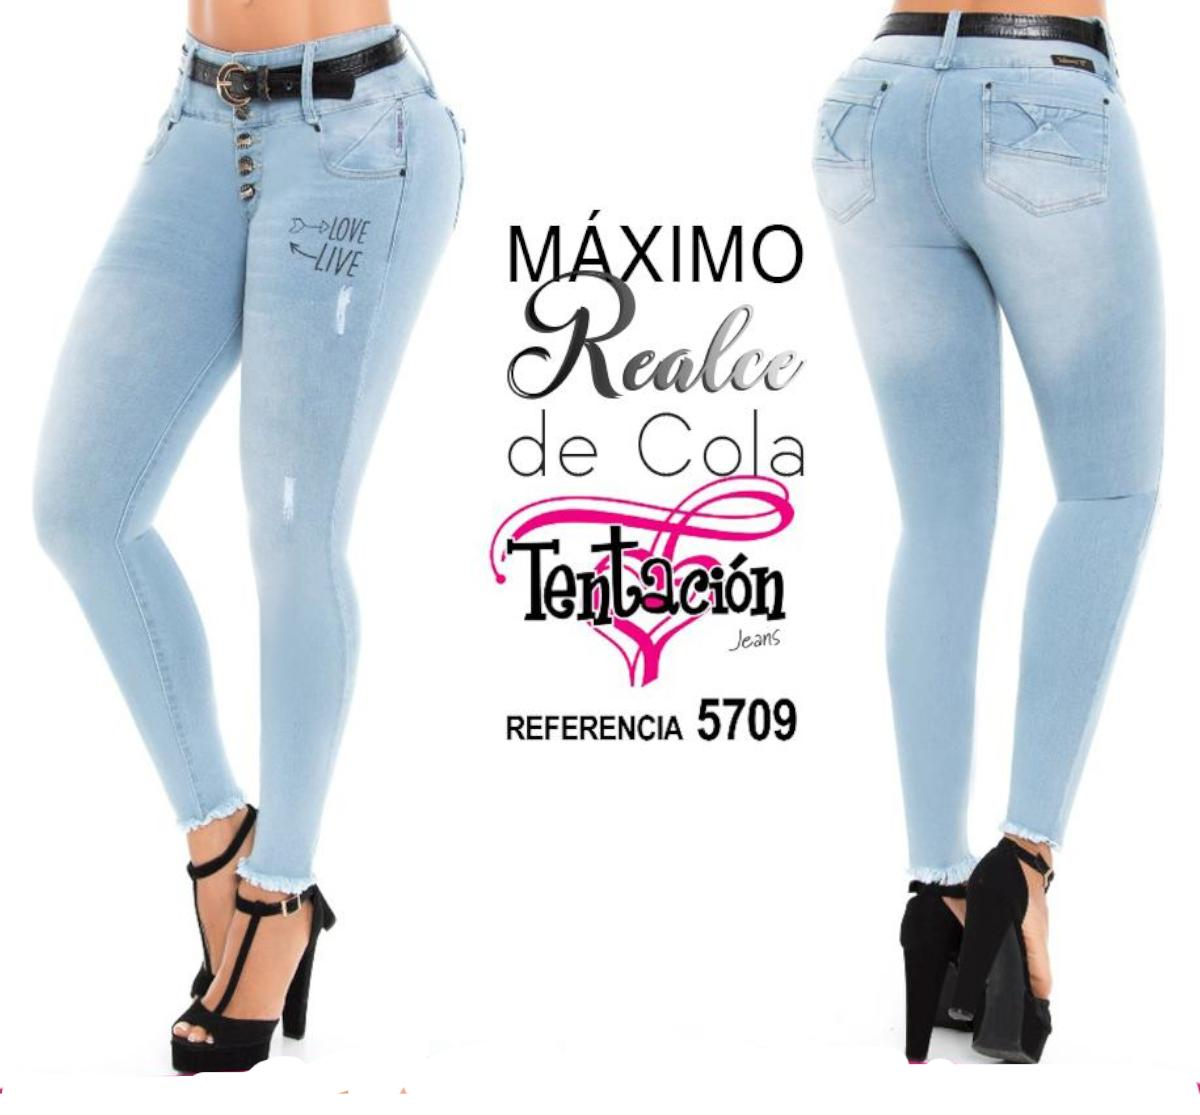 Light Blue Jean Jean Colombian Jeans with Pockets, Tail Lift Effect